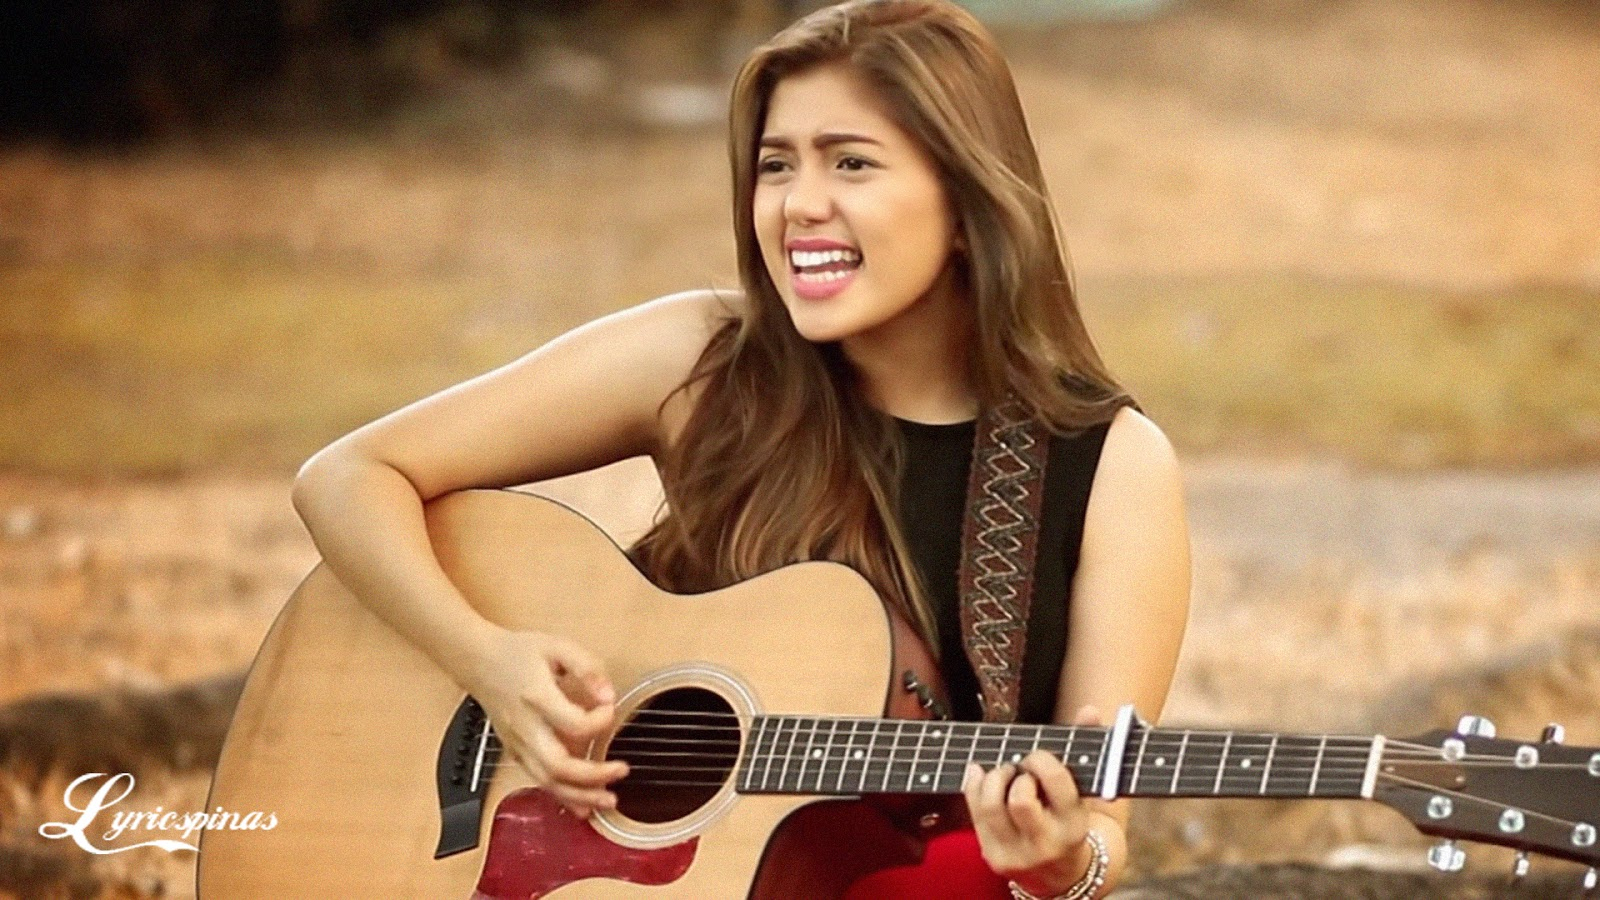 Friendzone by Isabelle De Leon from the Album LoveZone, Isabelle De Leon HD Wallpaper